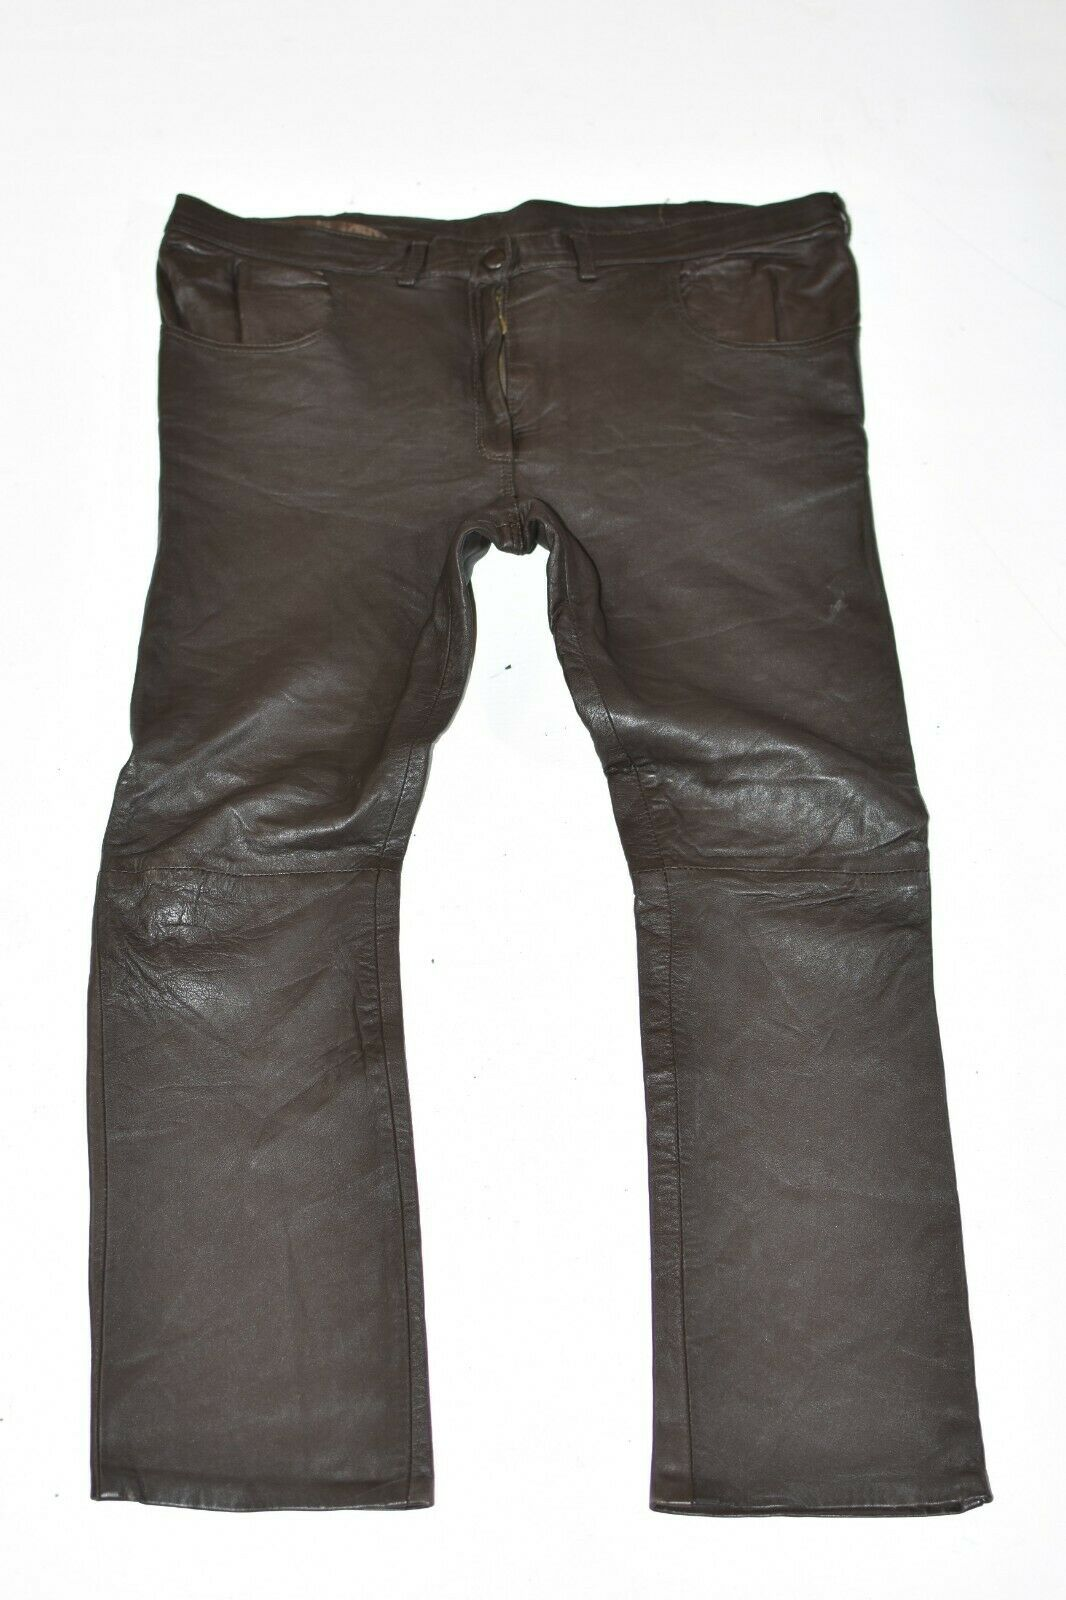 Brown Real Leather Straight Slim Biker Women's Trousers Pants Size W38  L27